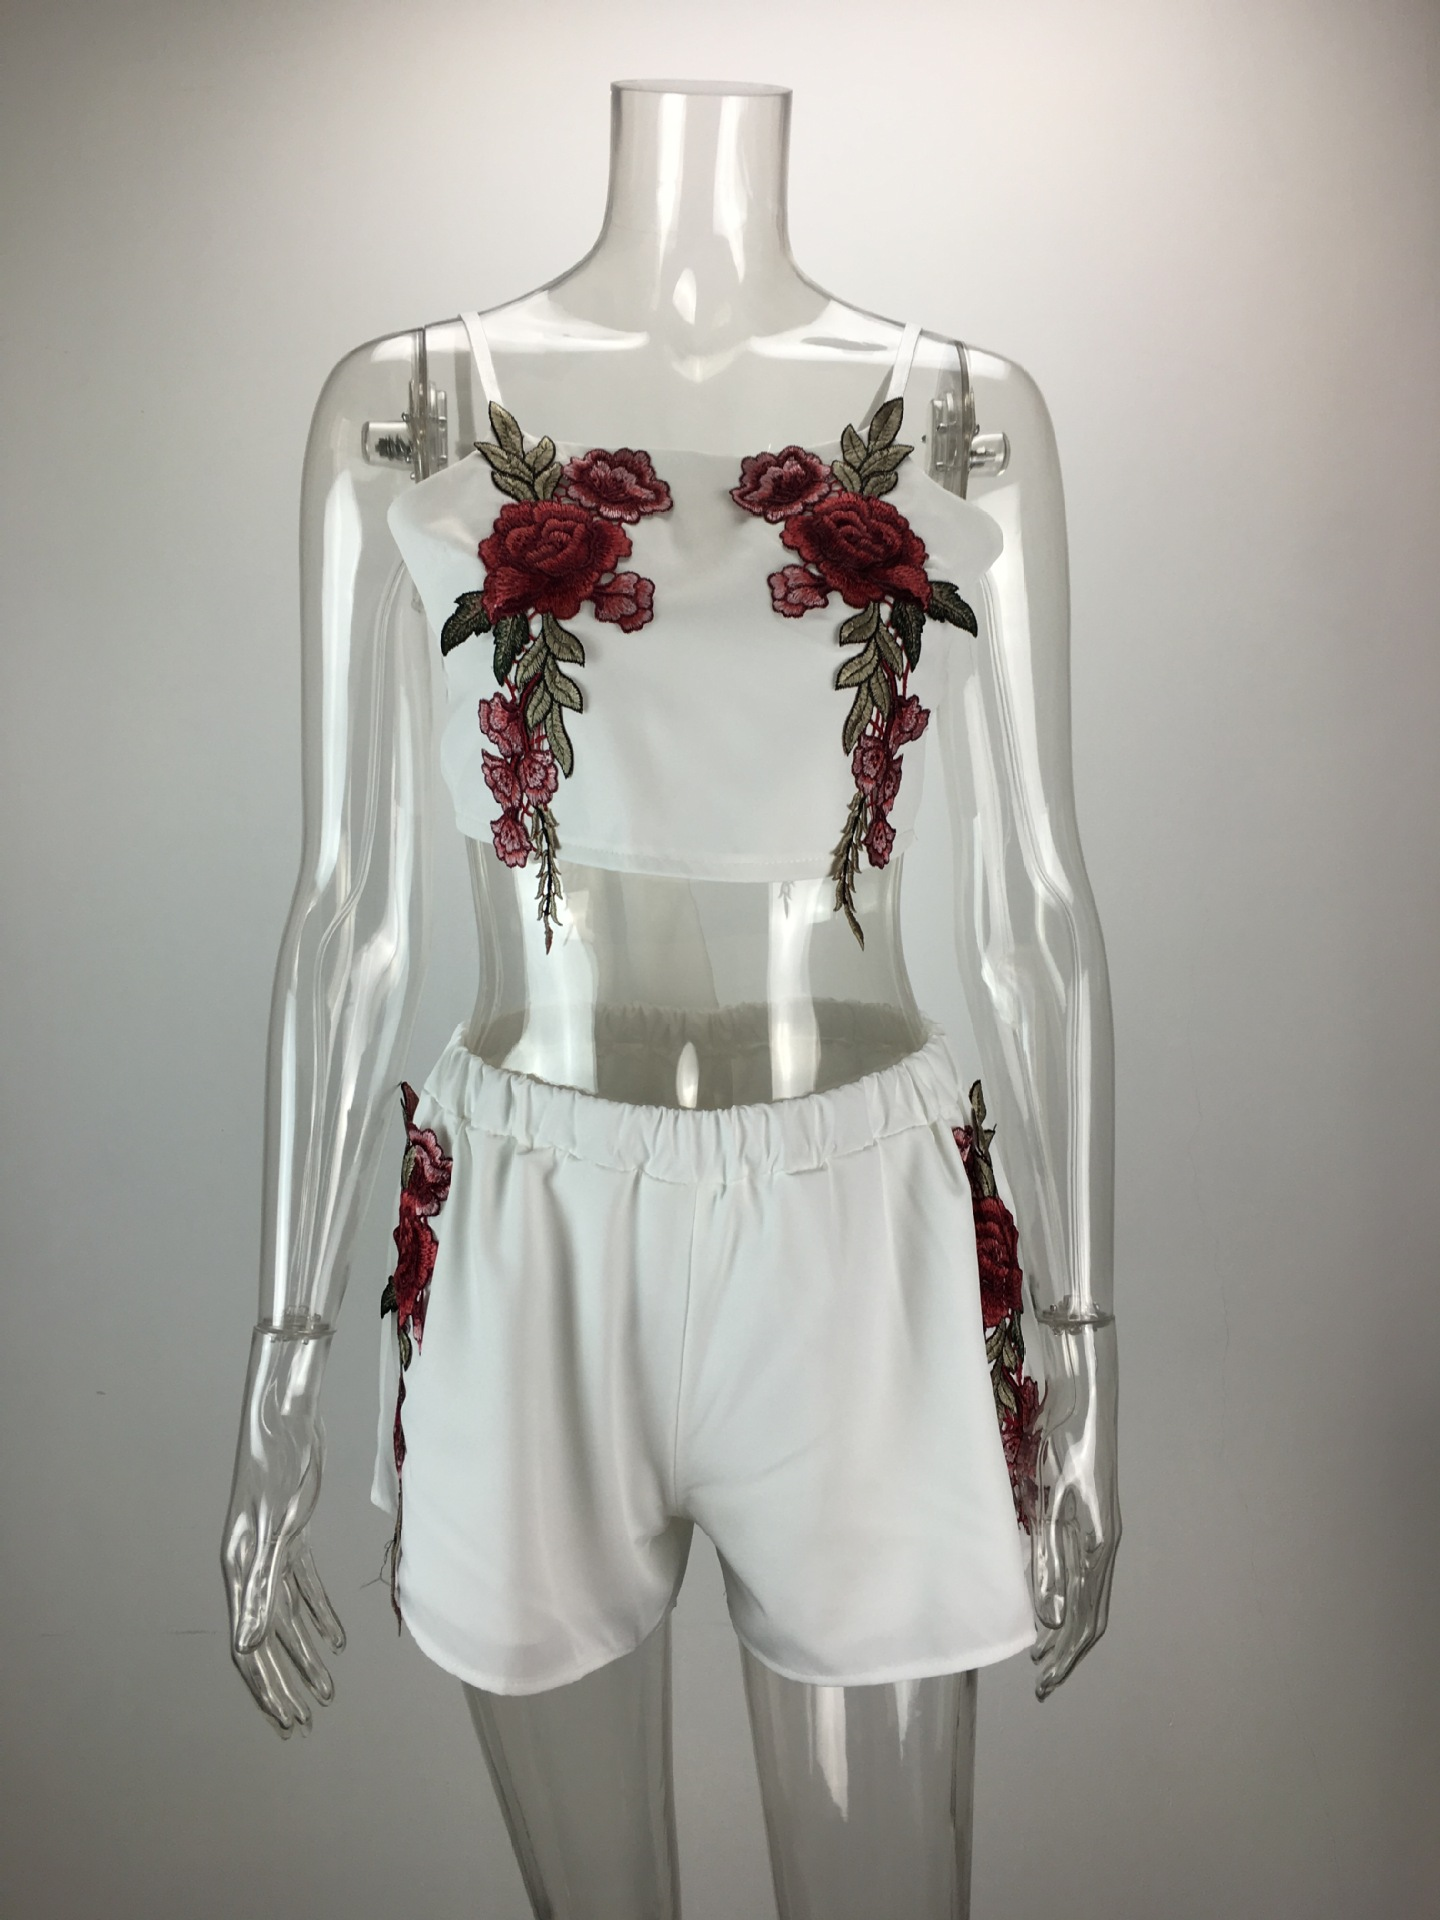 HTB1gyxORVXXXXaFXFXXq6xXFXXXR - Women Cropped Top Shorts Set Sexy Rose Floral Embroidered Cropped Top Short Set Female JKP015